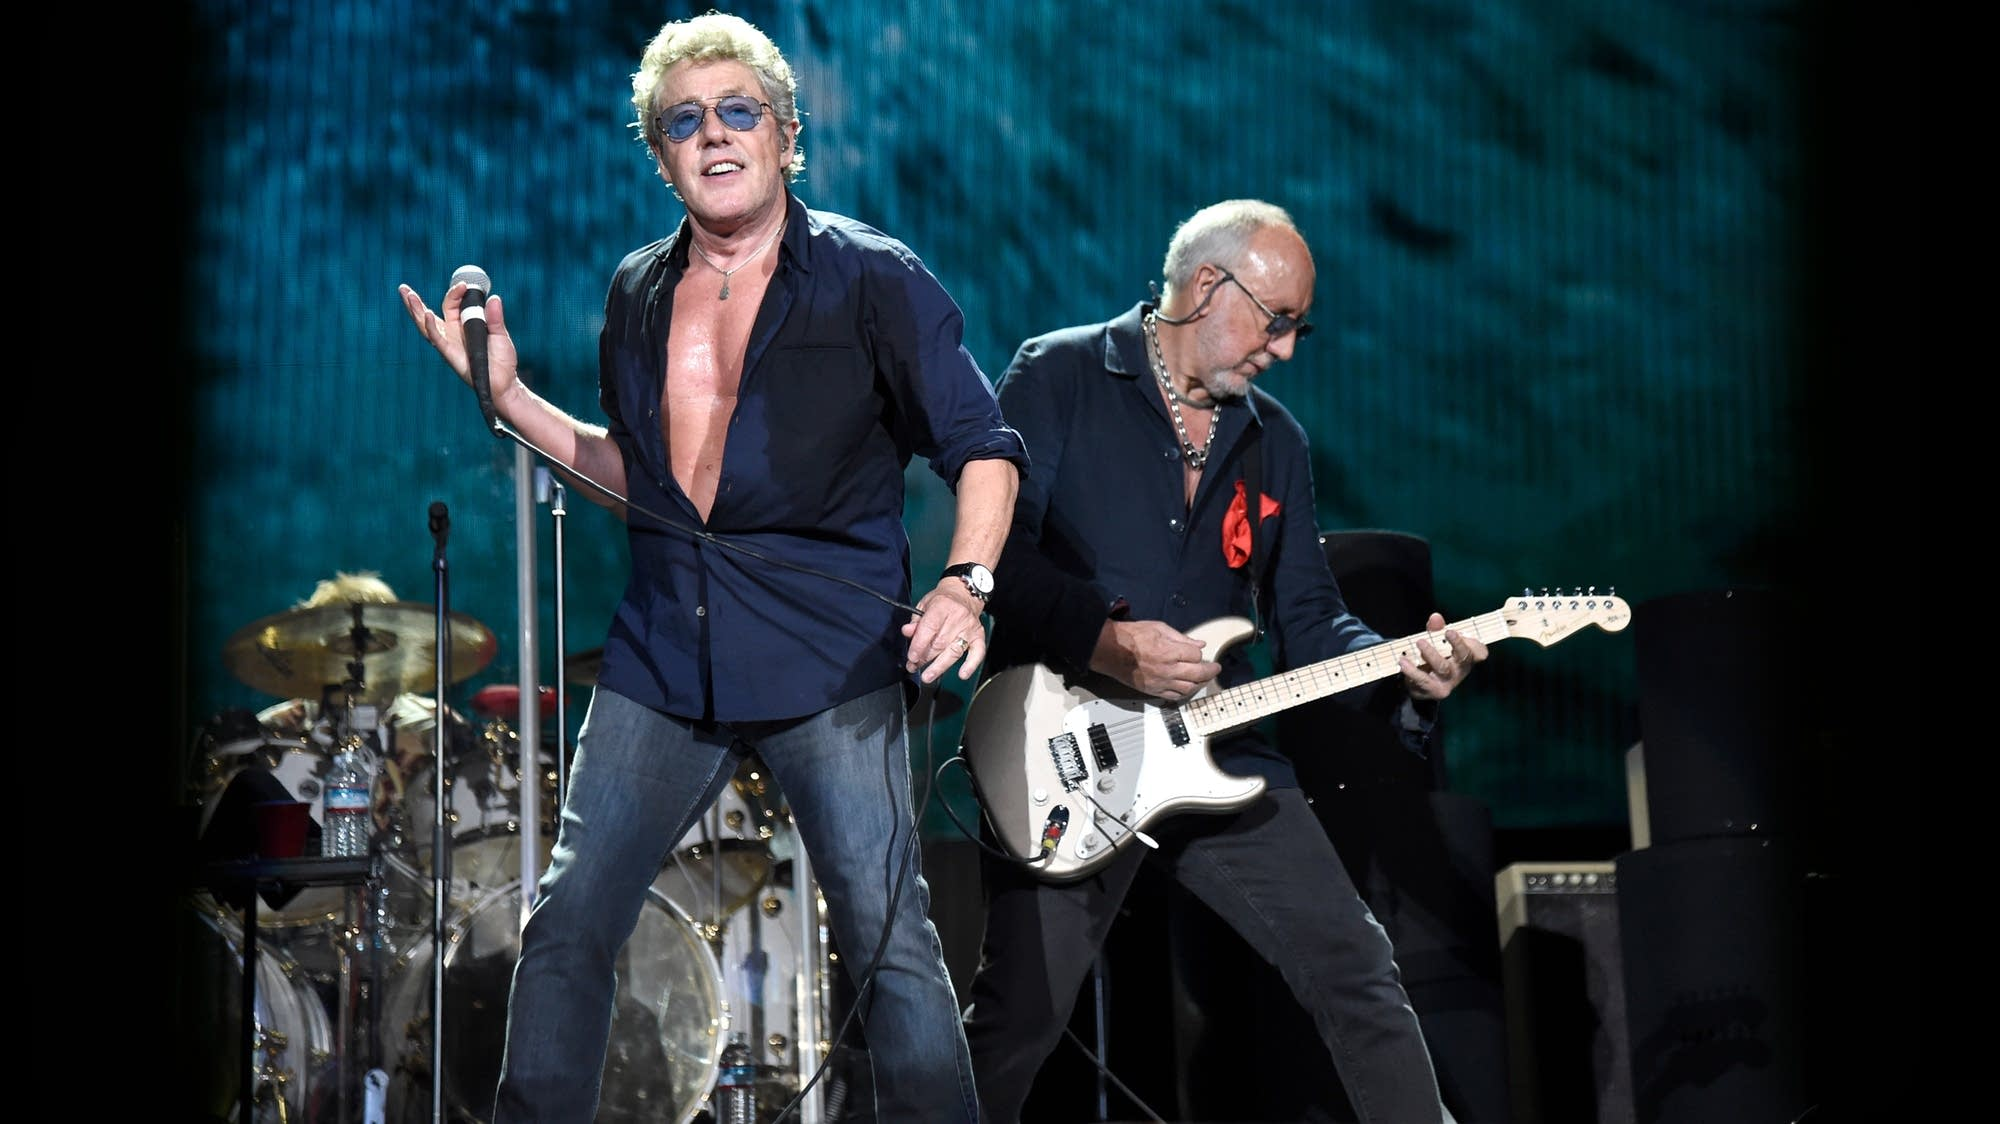 Singer Roger Daltry and guitarist Pete Townshend are the Who.